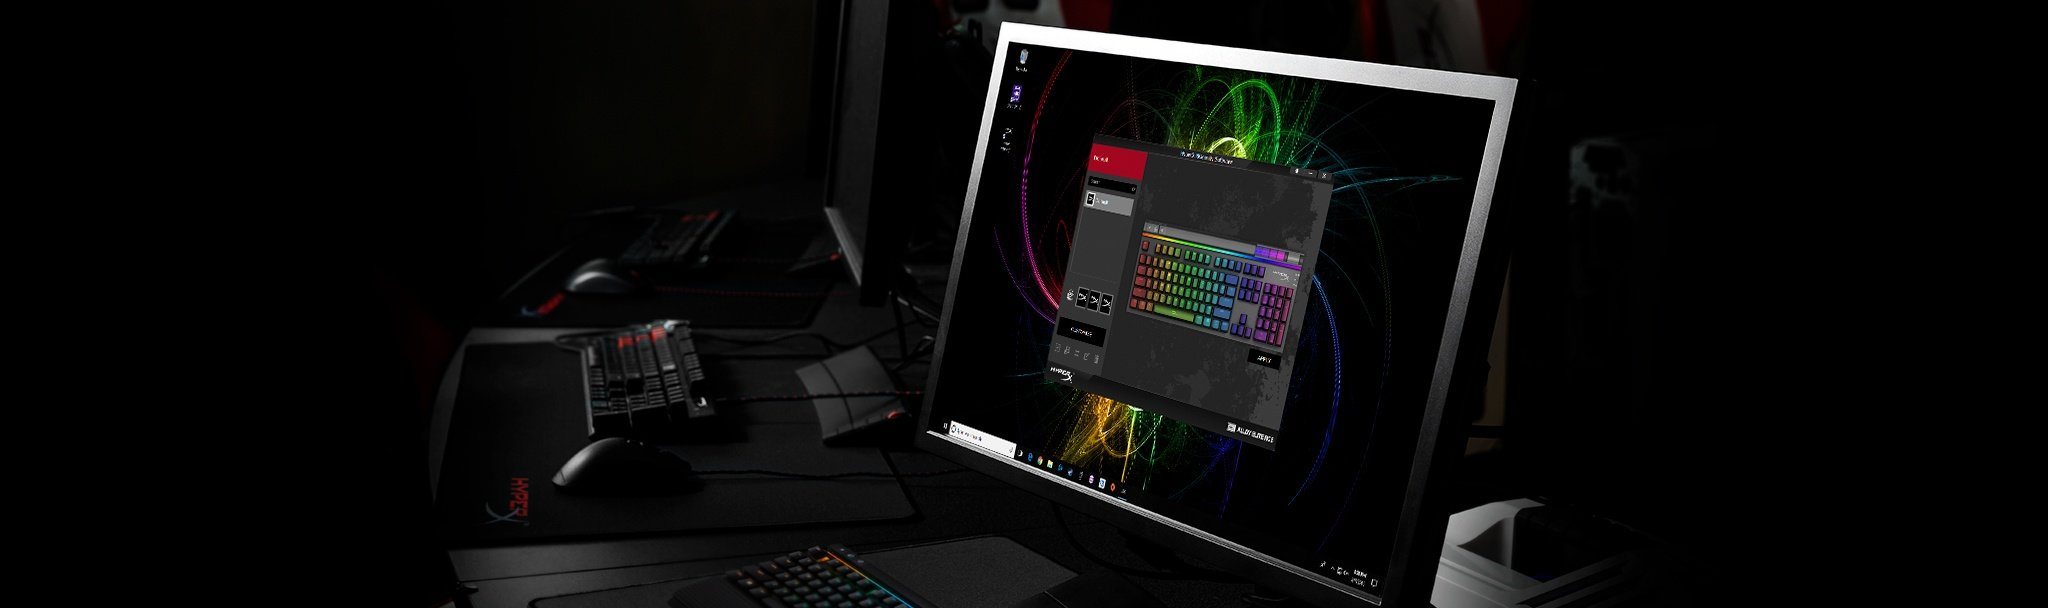 HyperX NGenuity software enables advanced customisation